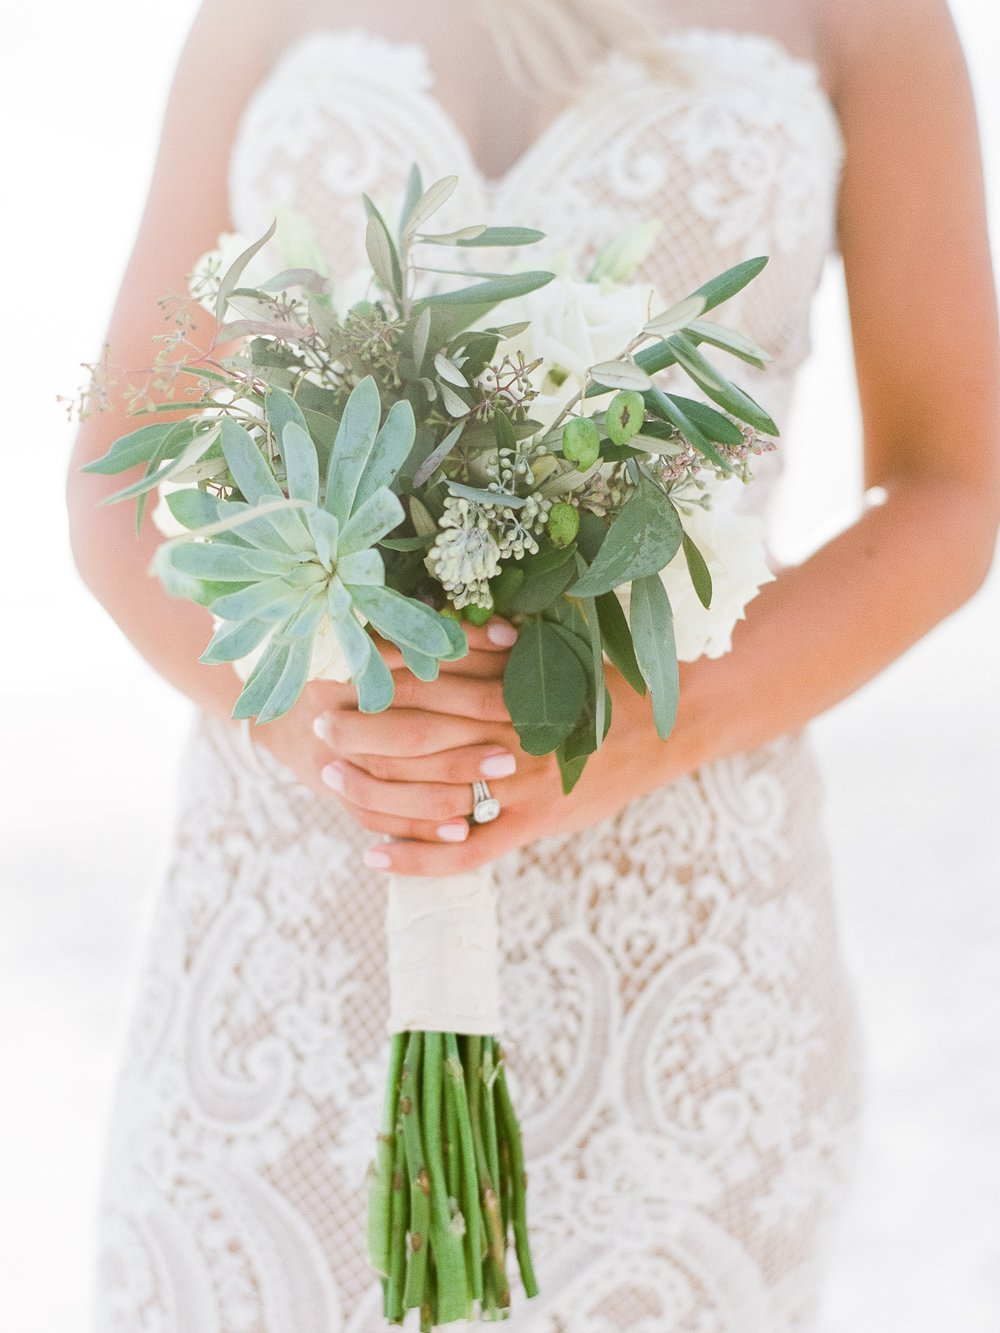 Jessie Barksdale Photography_succulent white rose eucalyptus bouquet beach wedding justine liddy